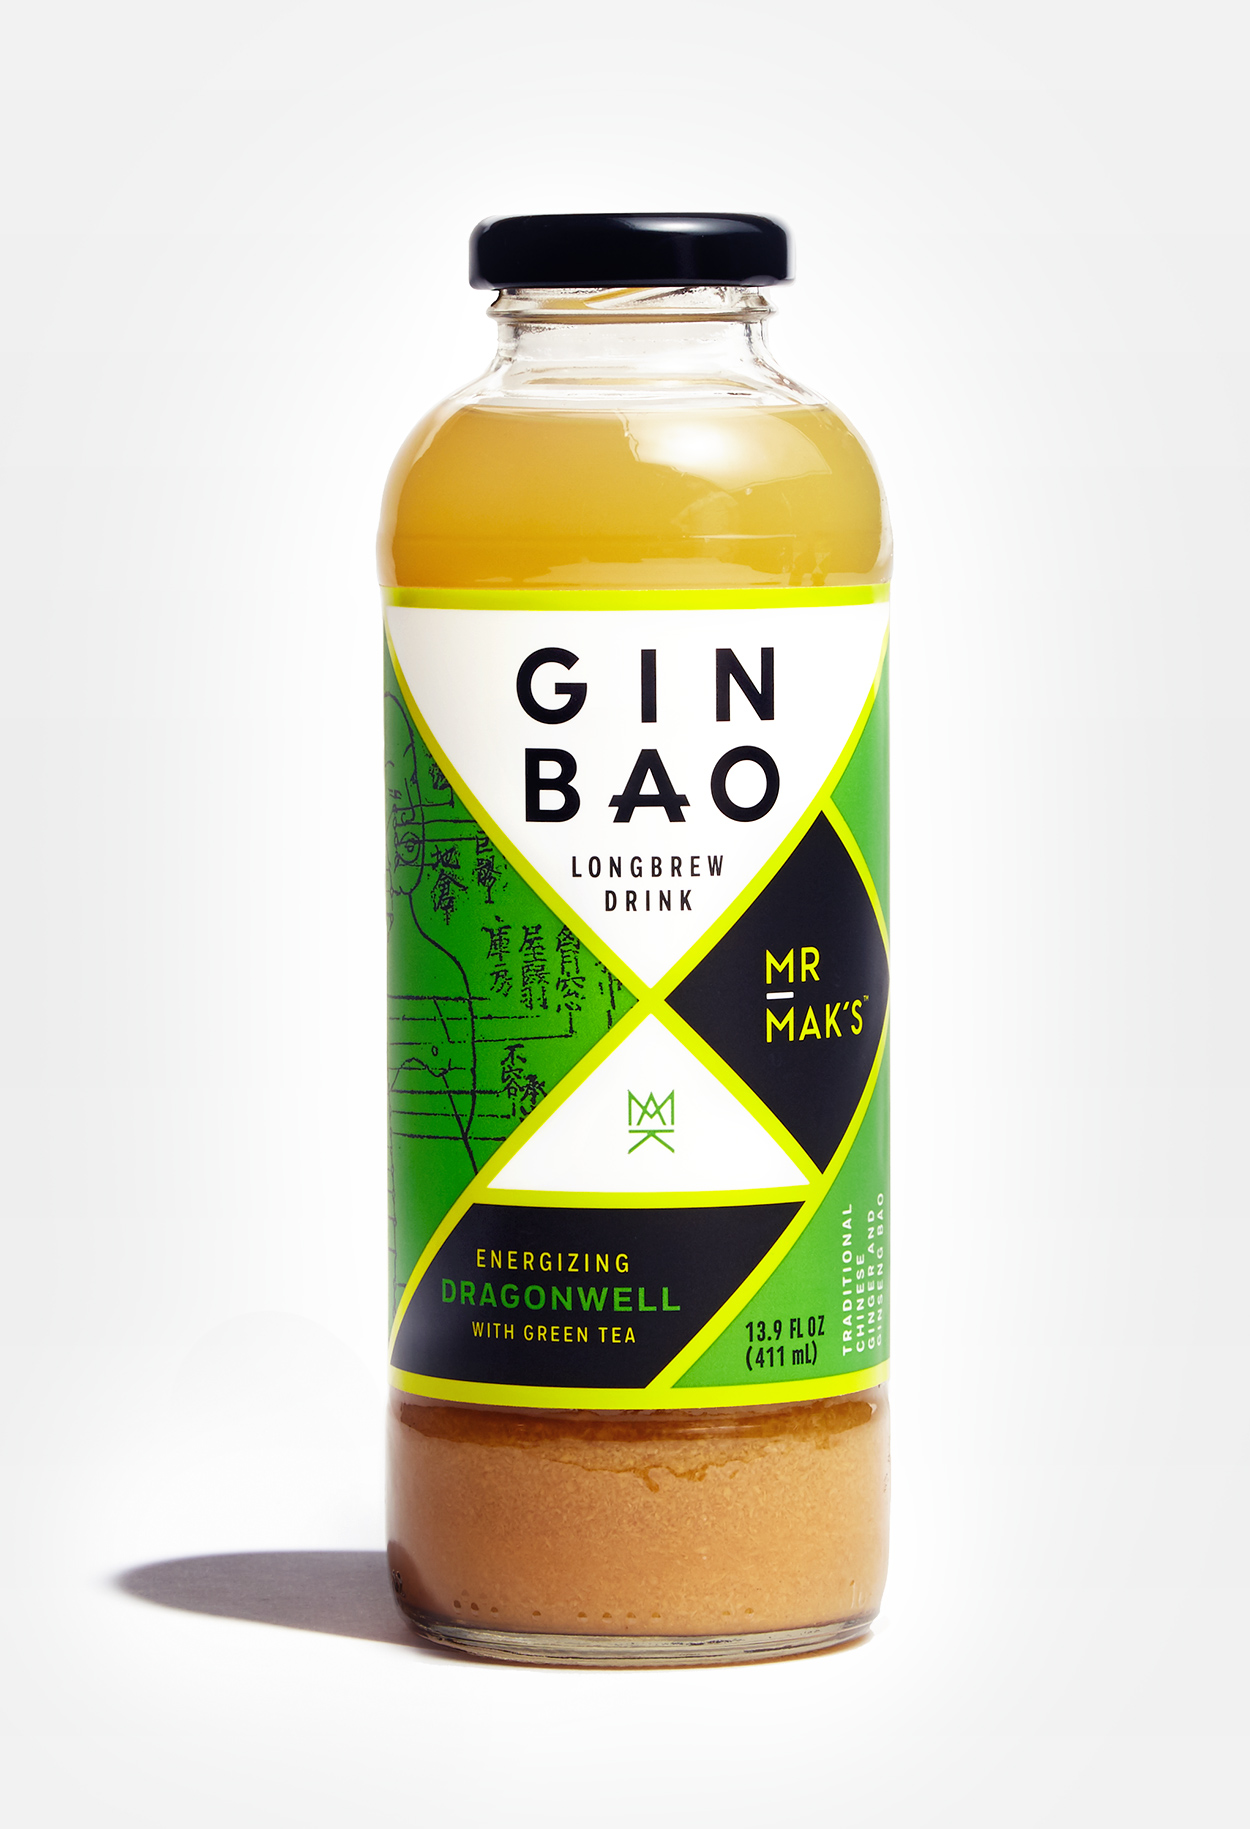 Mr. Mak's Ginbao packaging design. Energizing Dragonwell flavor. Designed by Abby Haddican.